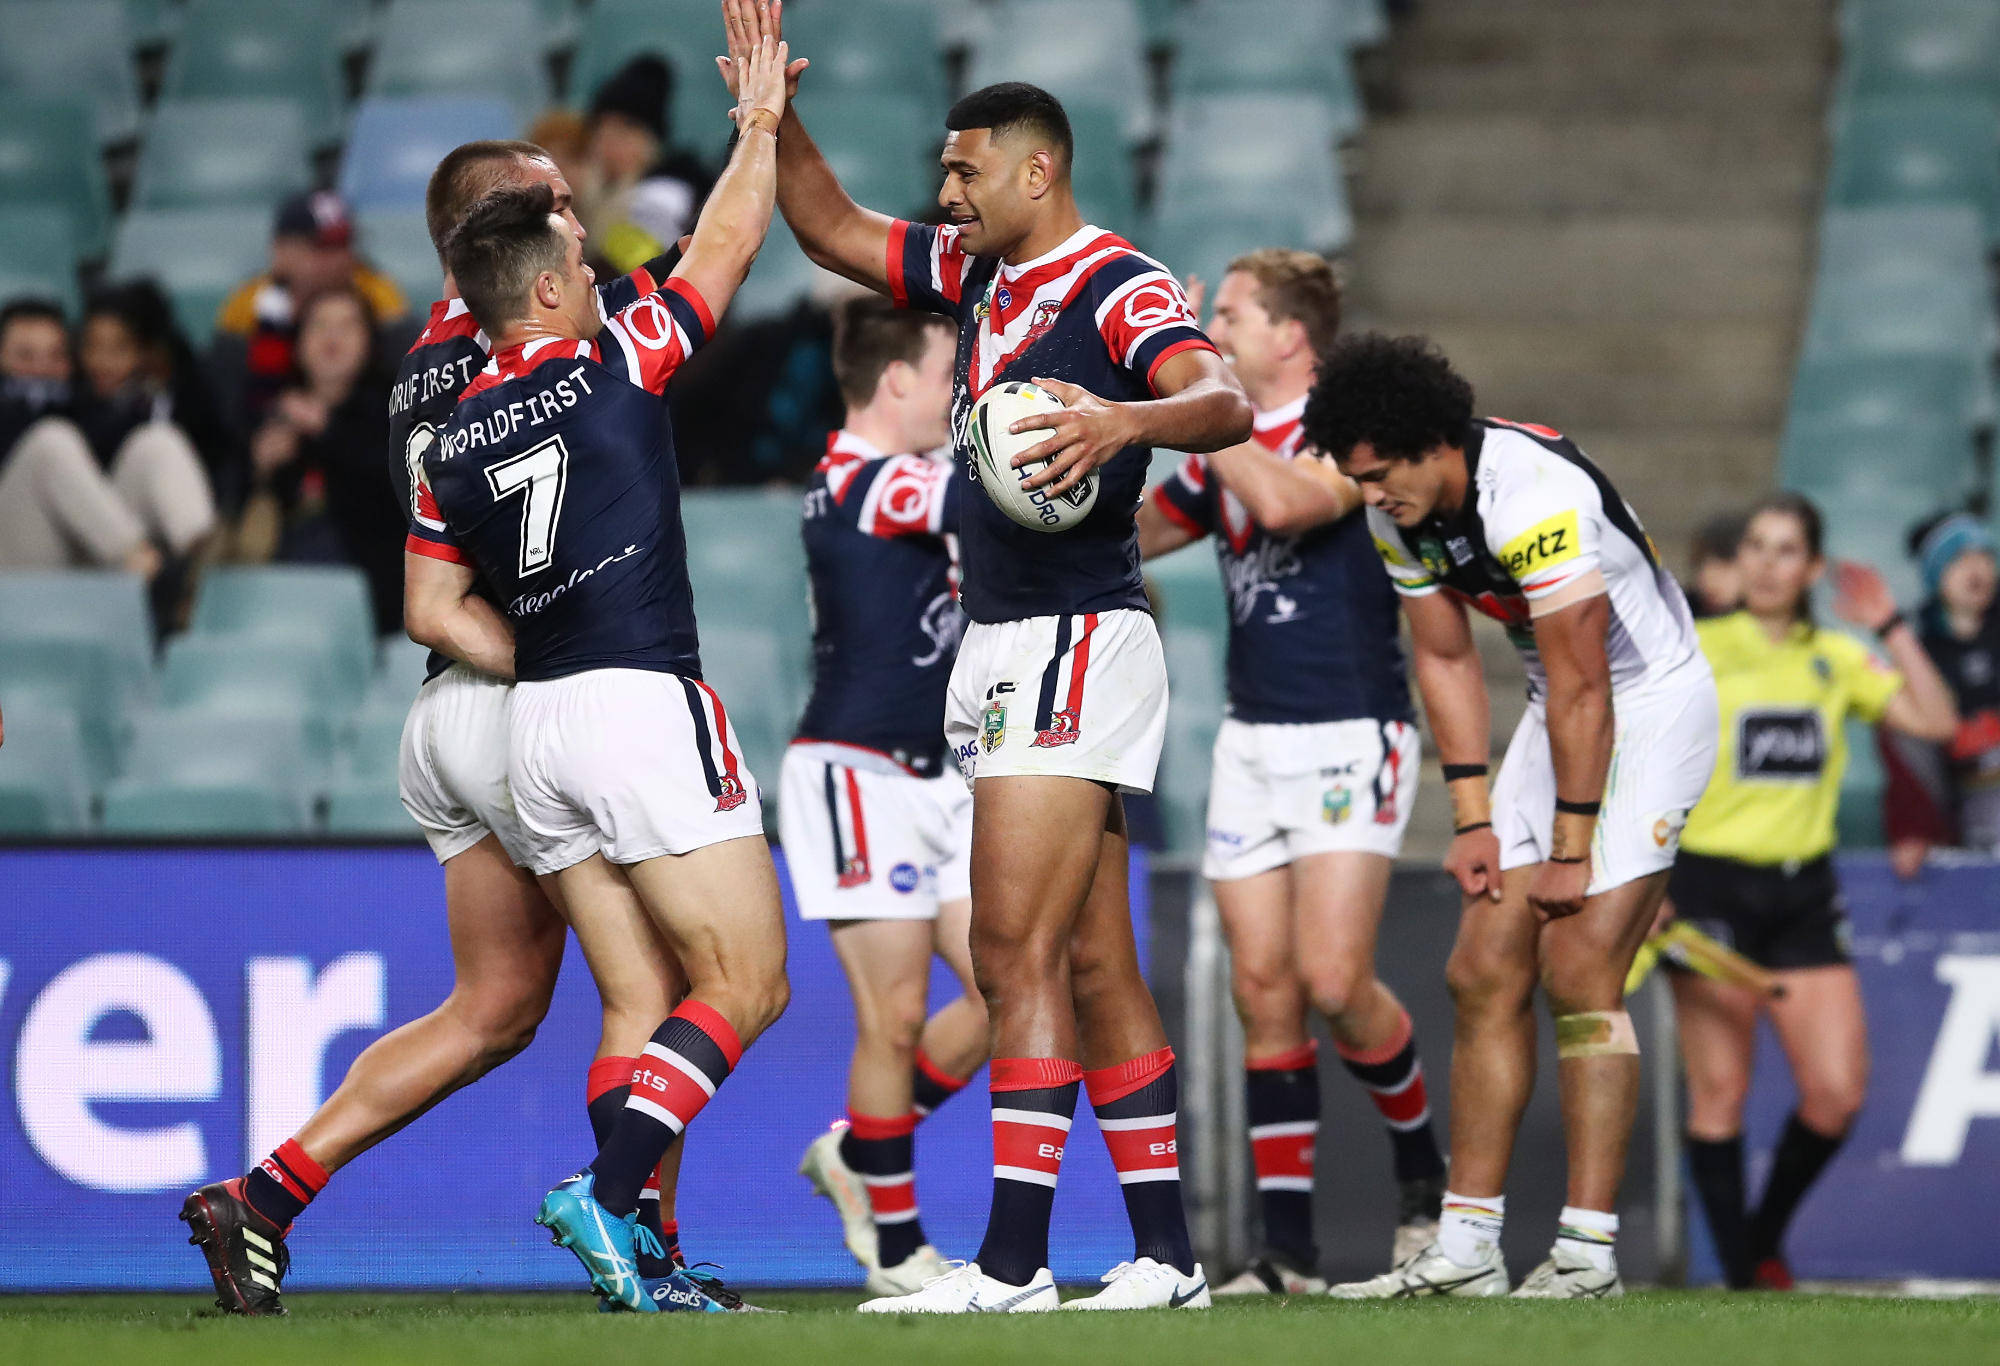 The Roosters celebrate during their win over the Panthers.